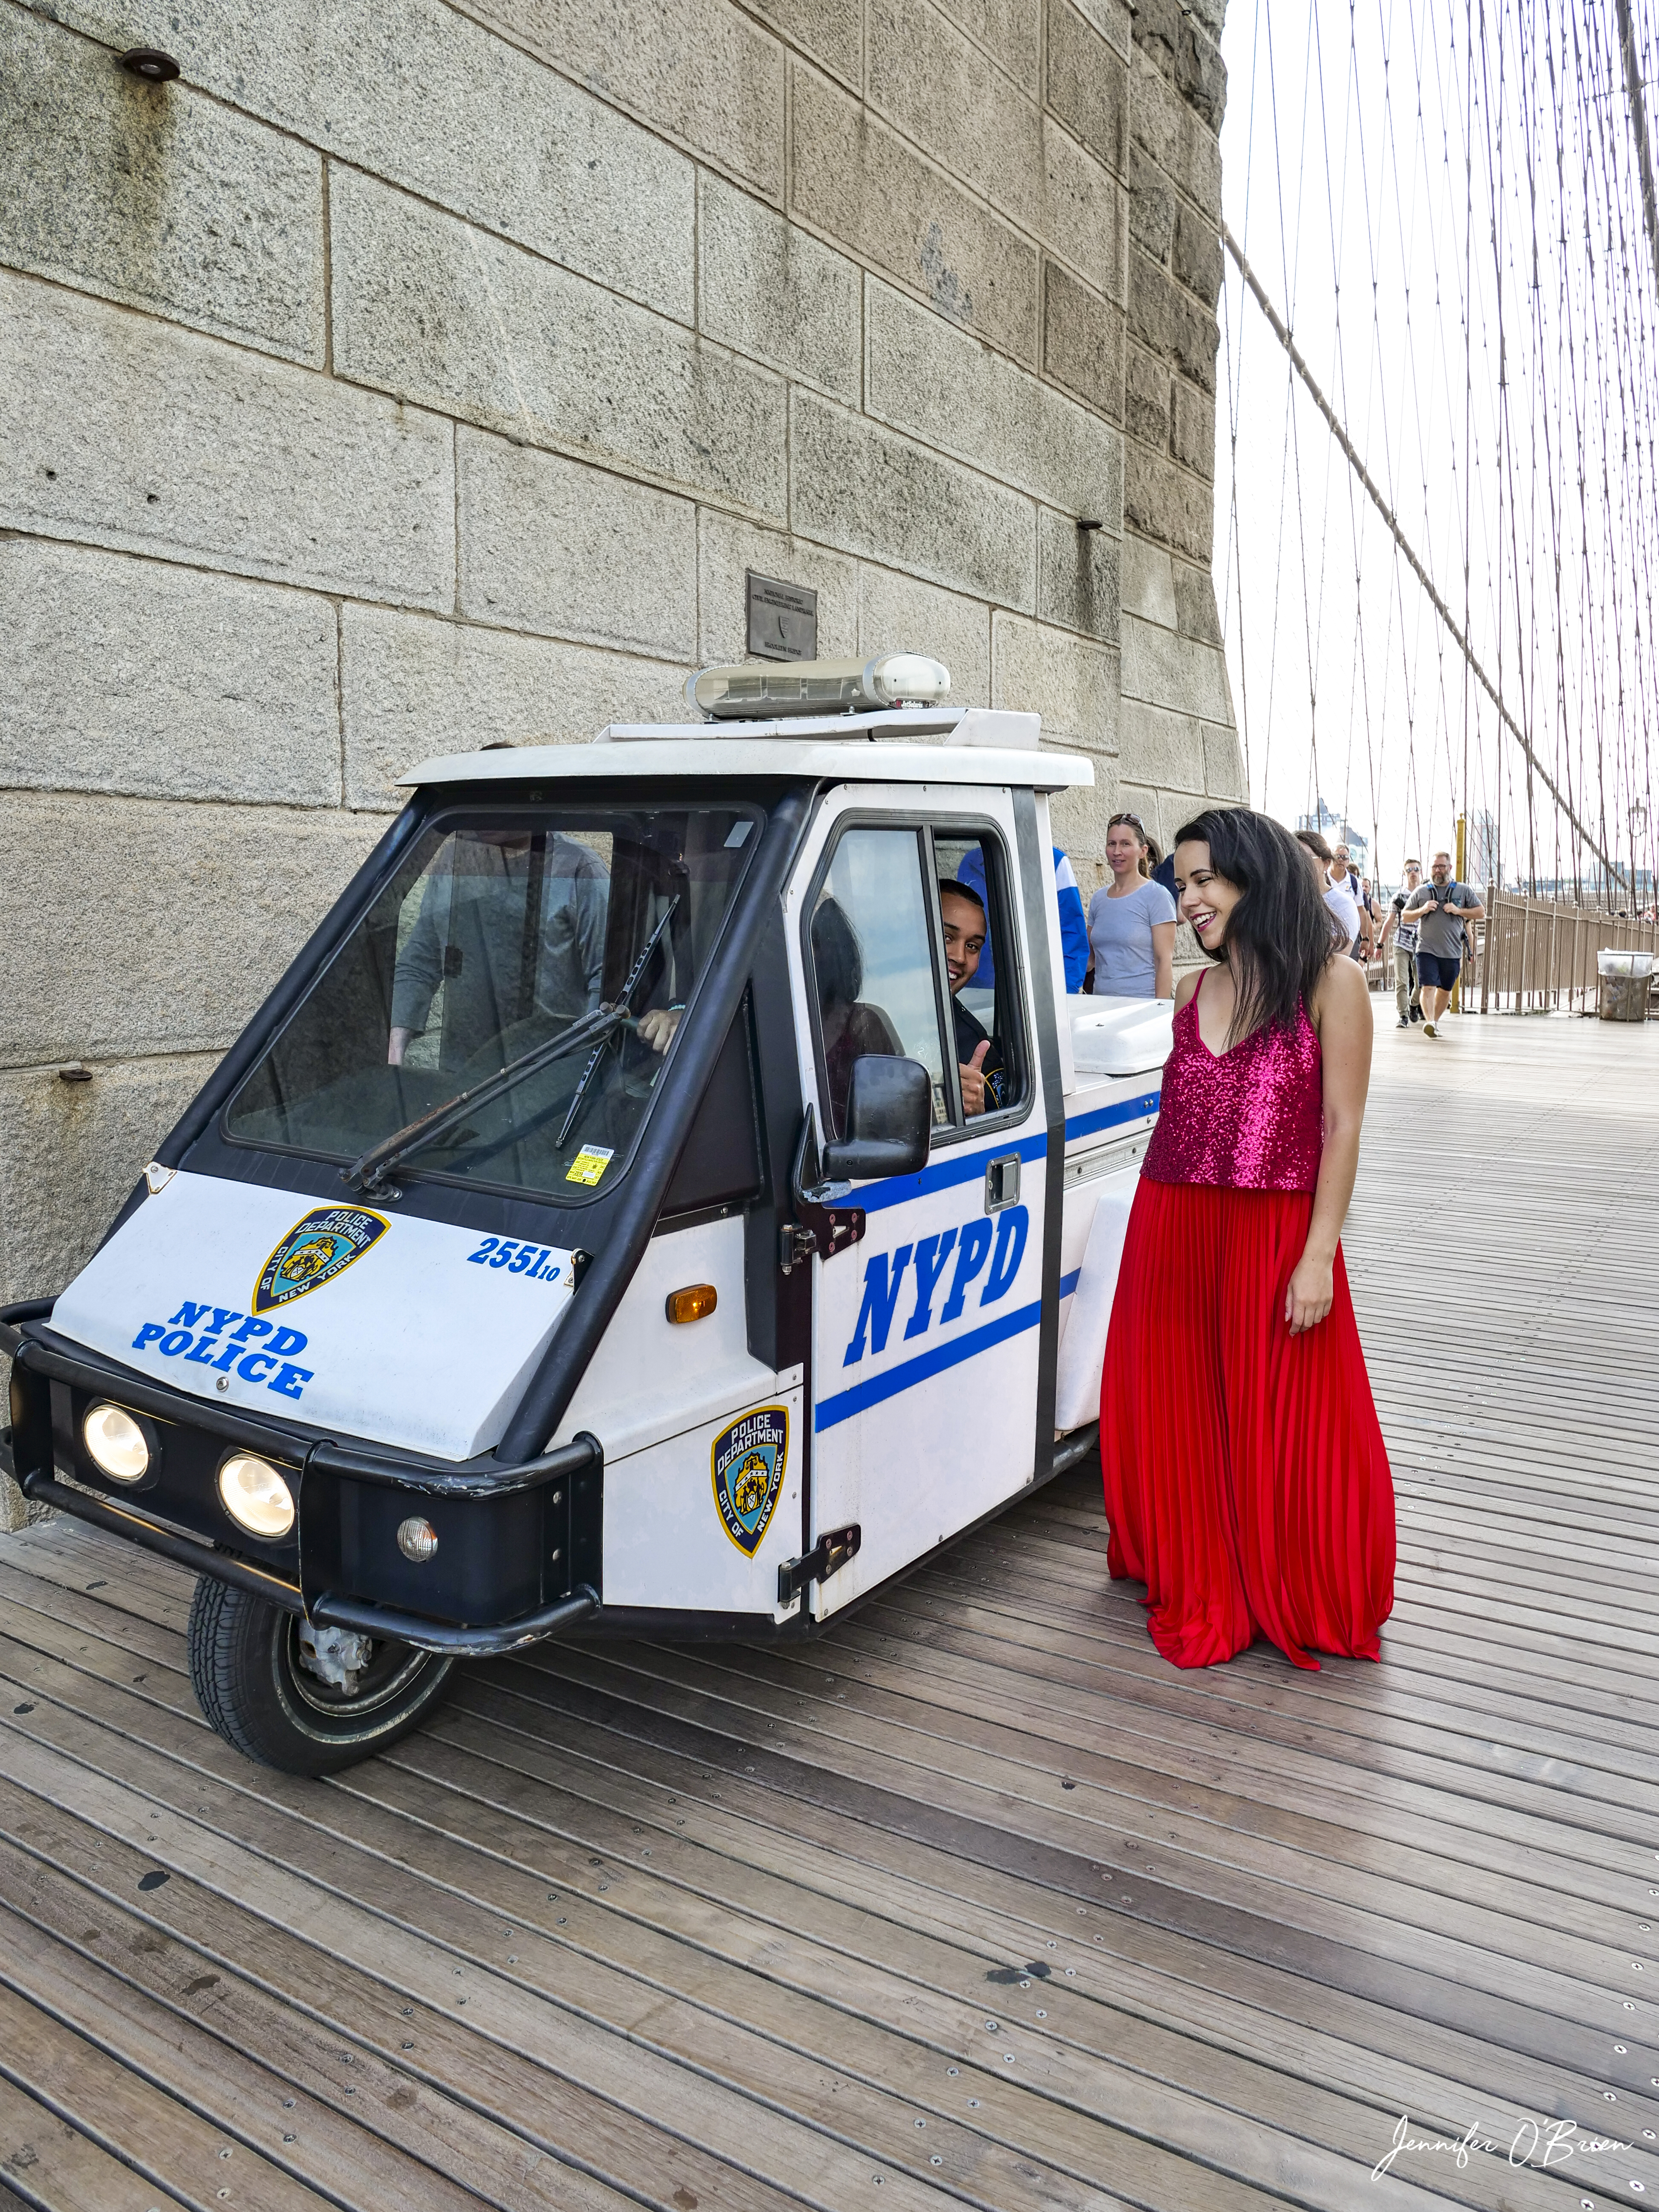 Top Instagram Photos of the Brooklyn Bridge The Travel Women Tower NYPD police smiling NYC bike mini car